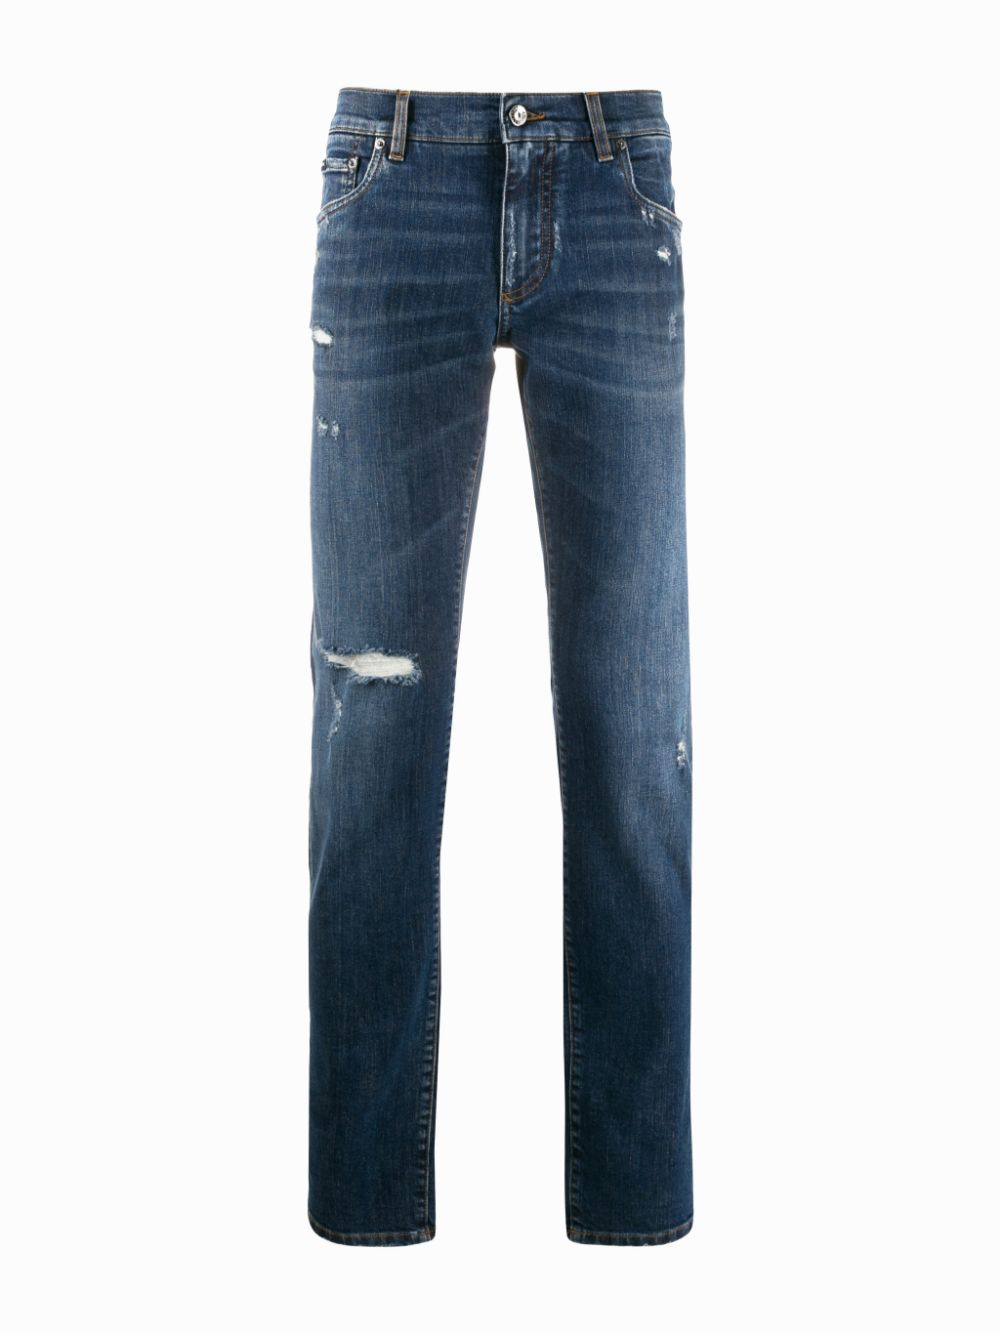 blue stretch cotton distressed slim fit jeans DOLCE & GABBANA |  | GY07LD-G8CA2S9001